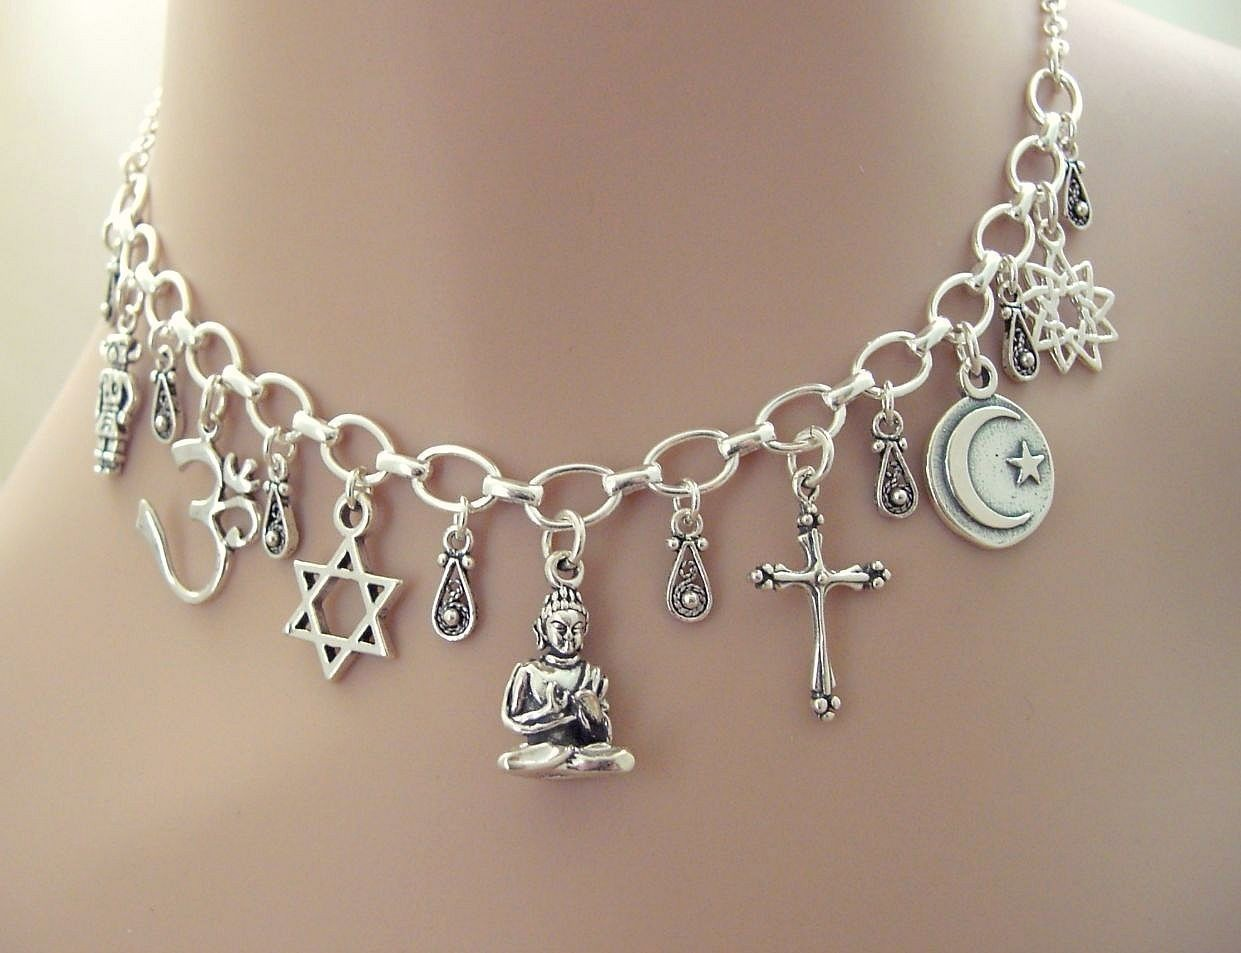 Interfaith Unity Sterling Silver Charm Necklace - Religious Symbols